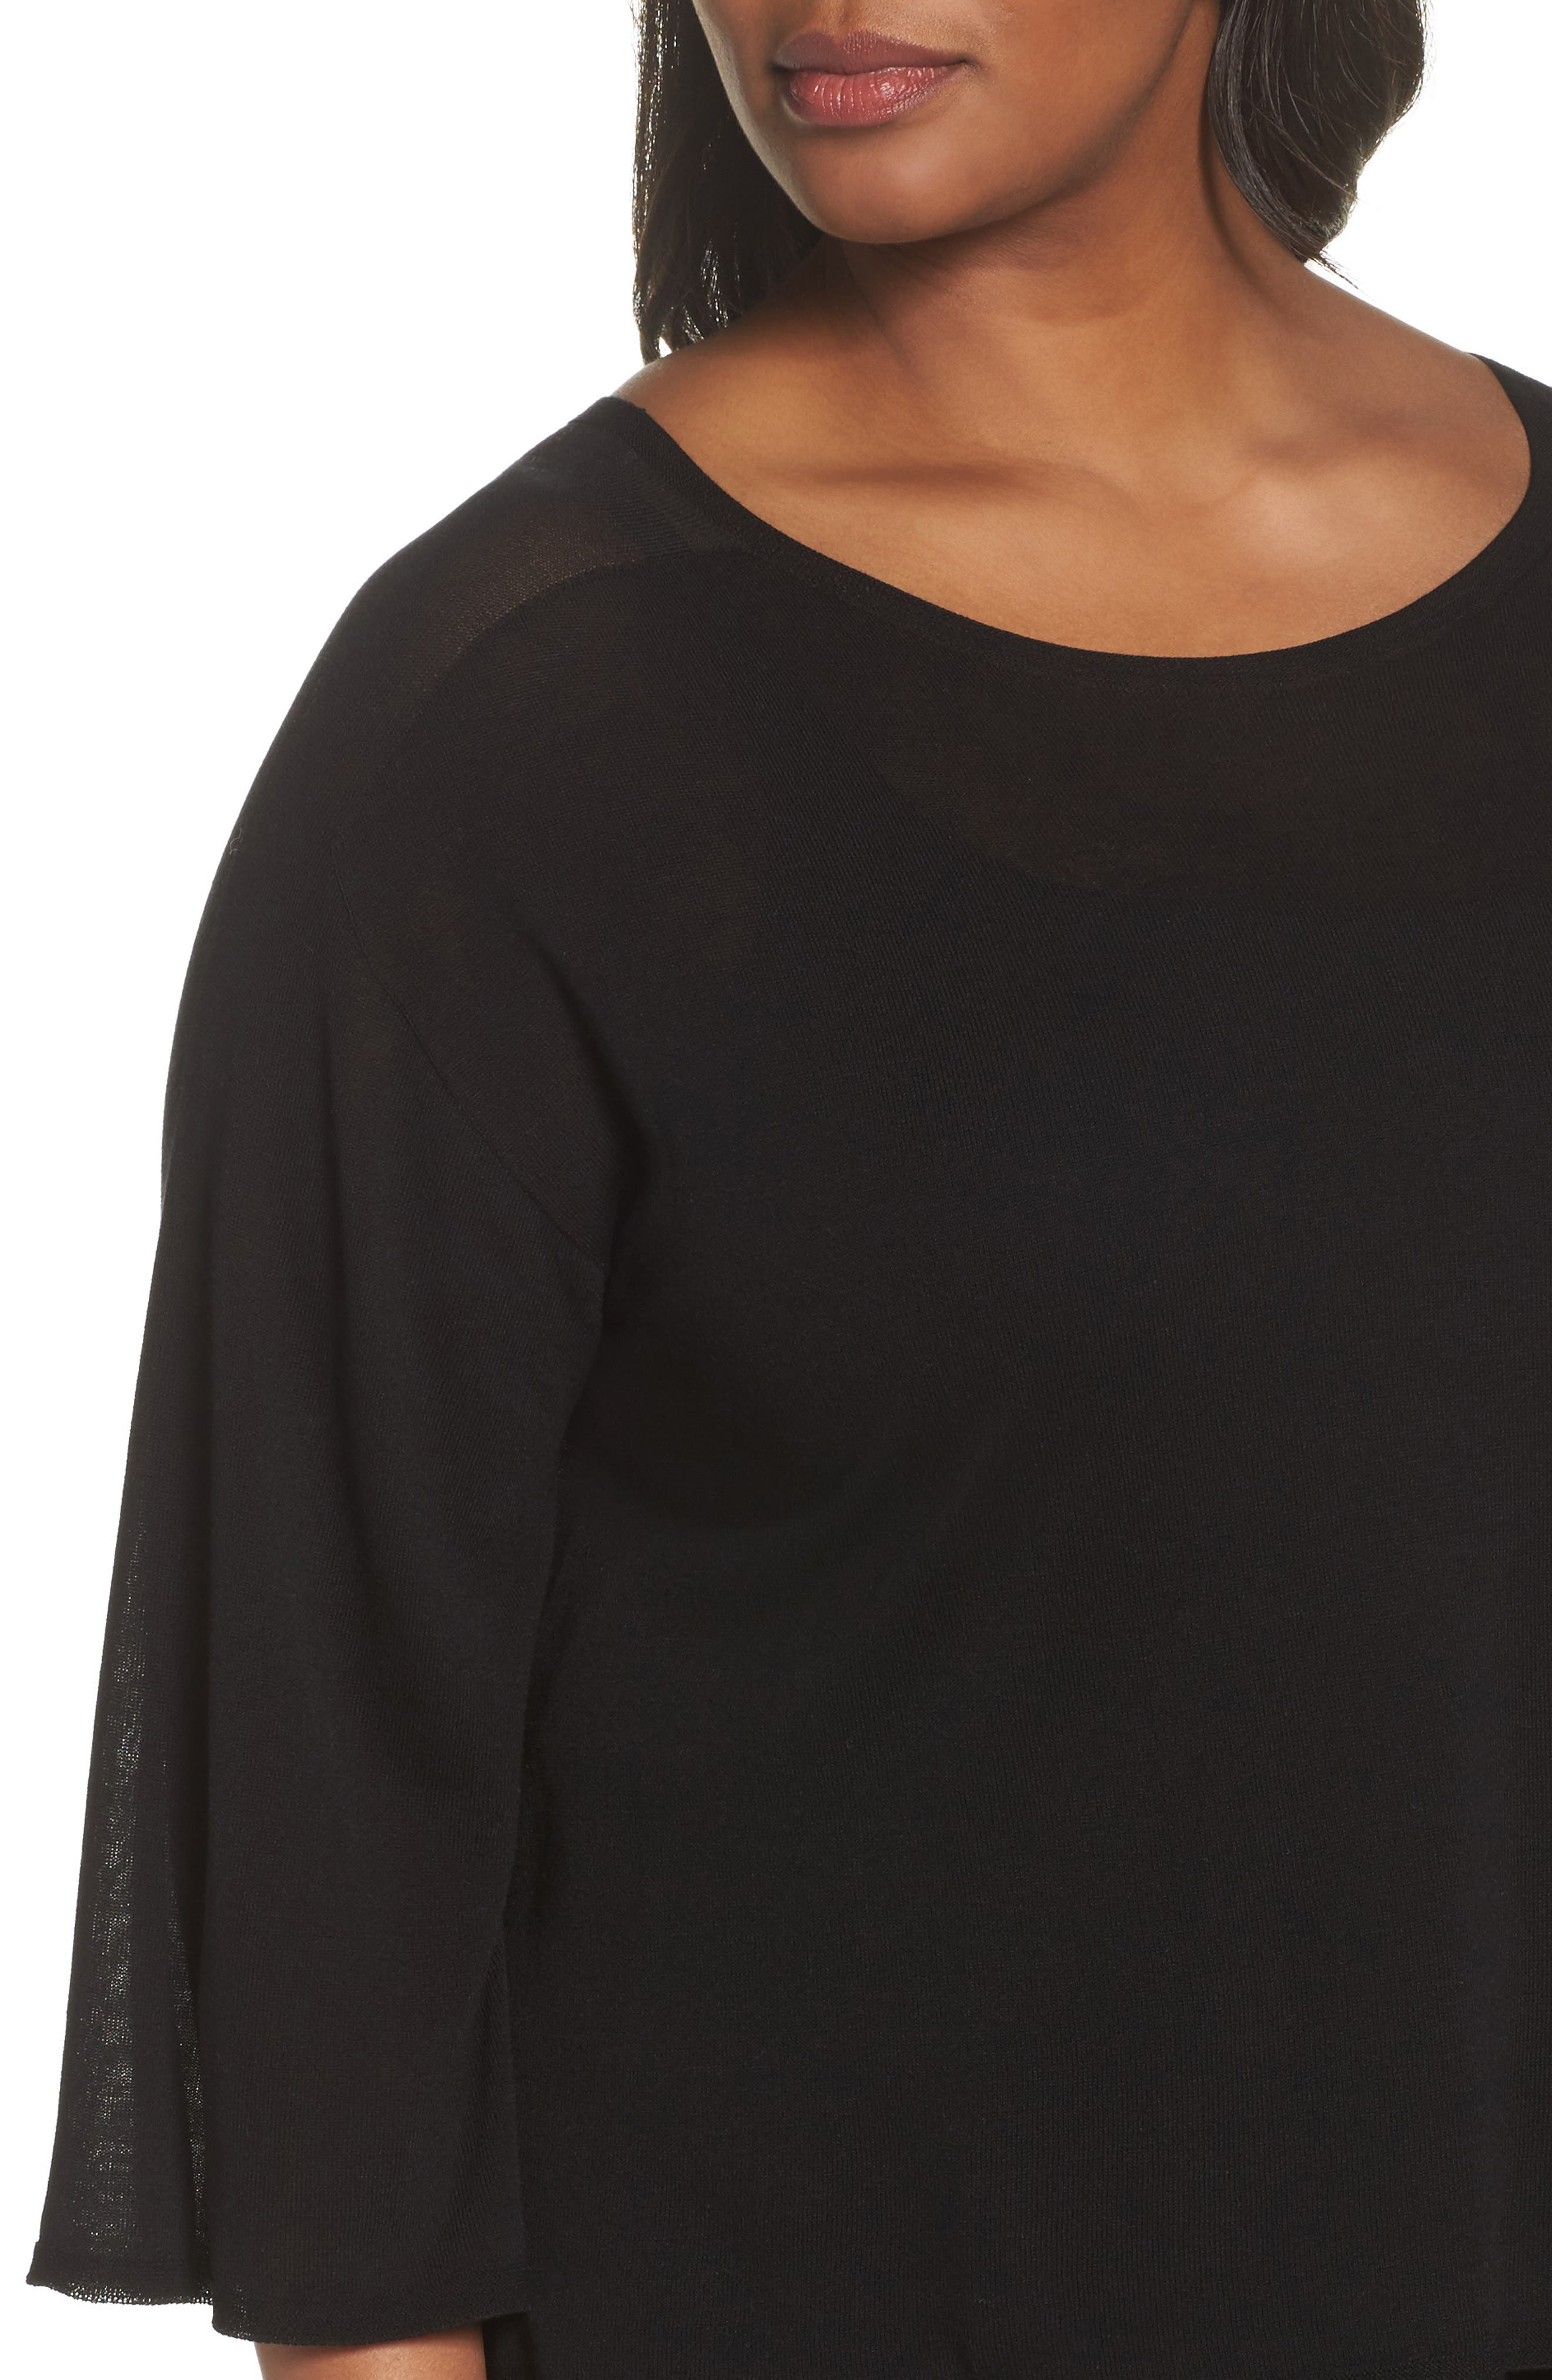 Tencel<sup>®</sup> Lyocell Lyocell Knit Sweater,                             Alternate thumbnail 4, color,                             001